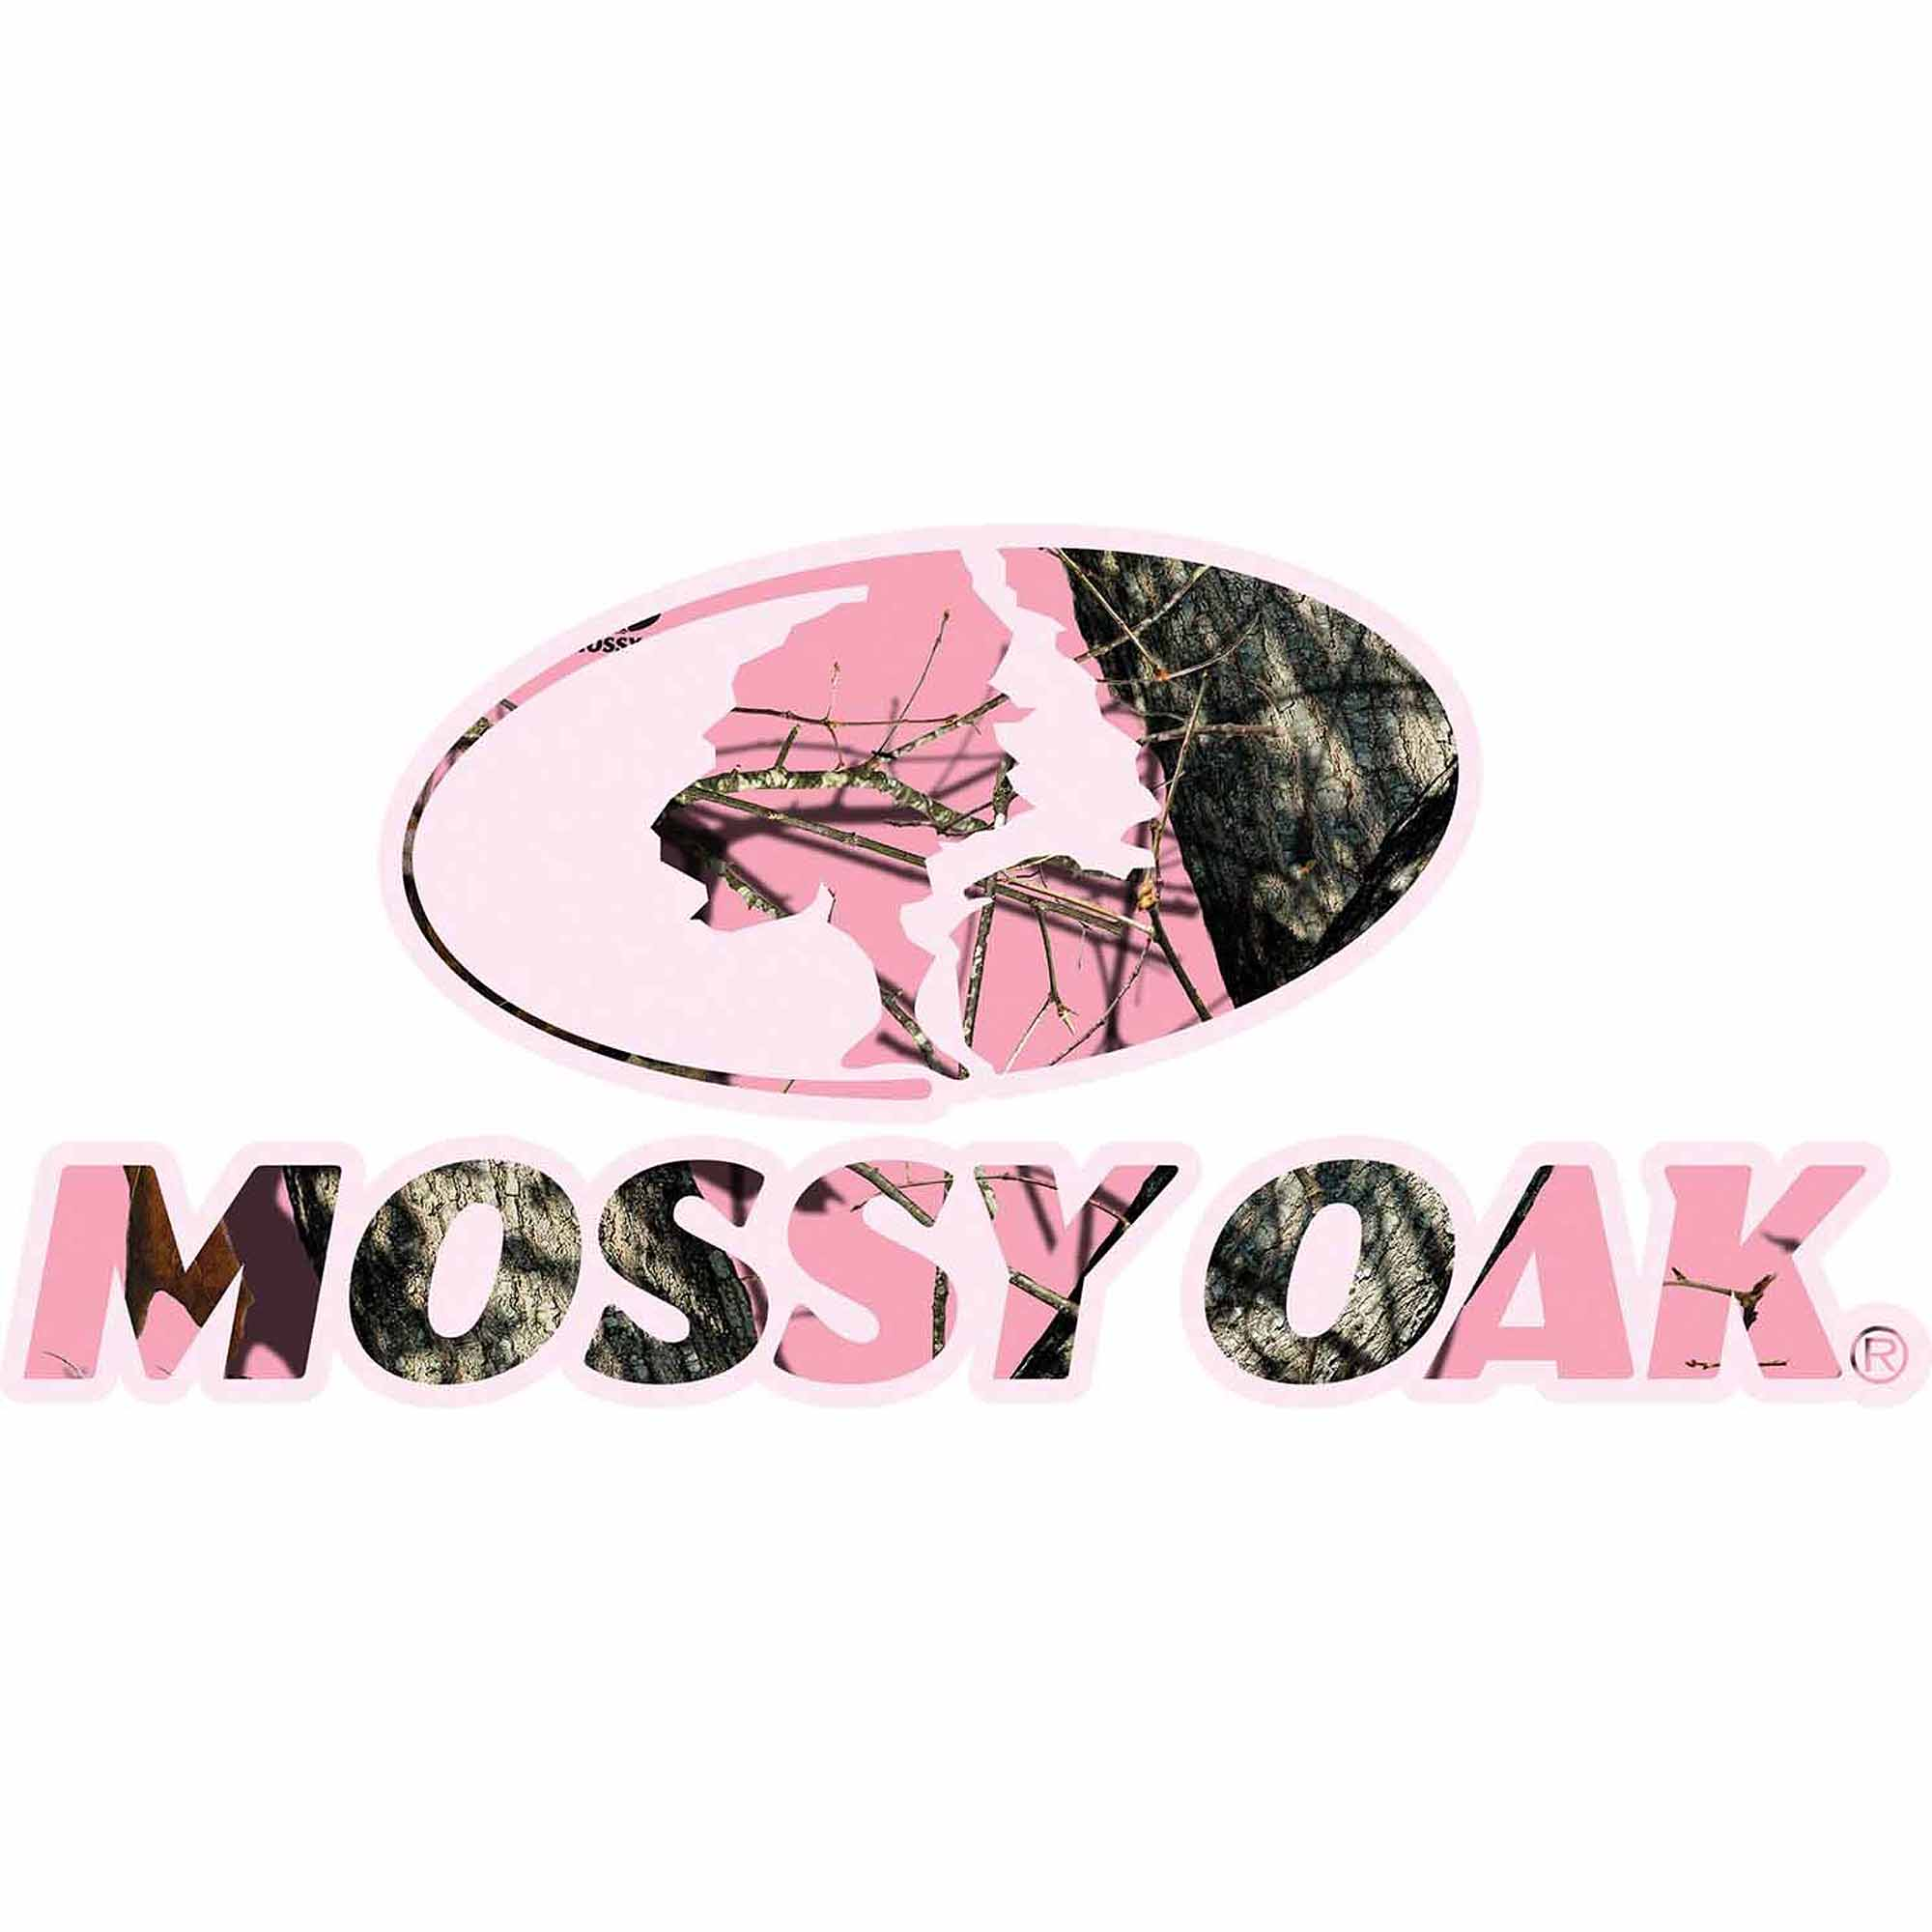 Mossy Oak Graphics Camo Logo With Pink Large 16.5X7.5 Decal